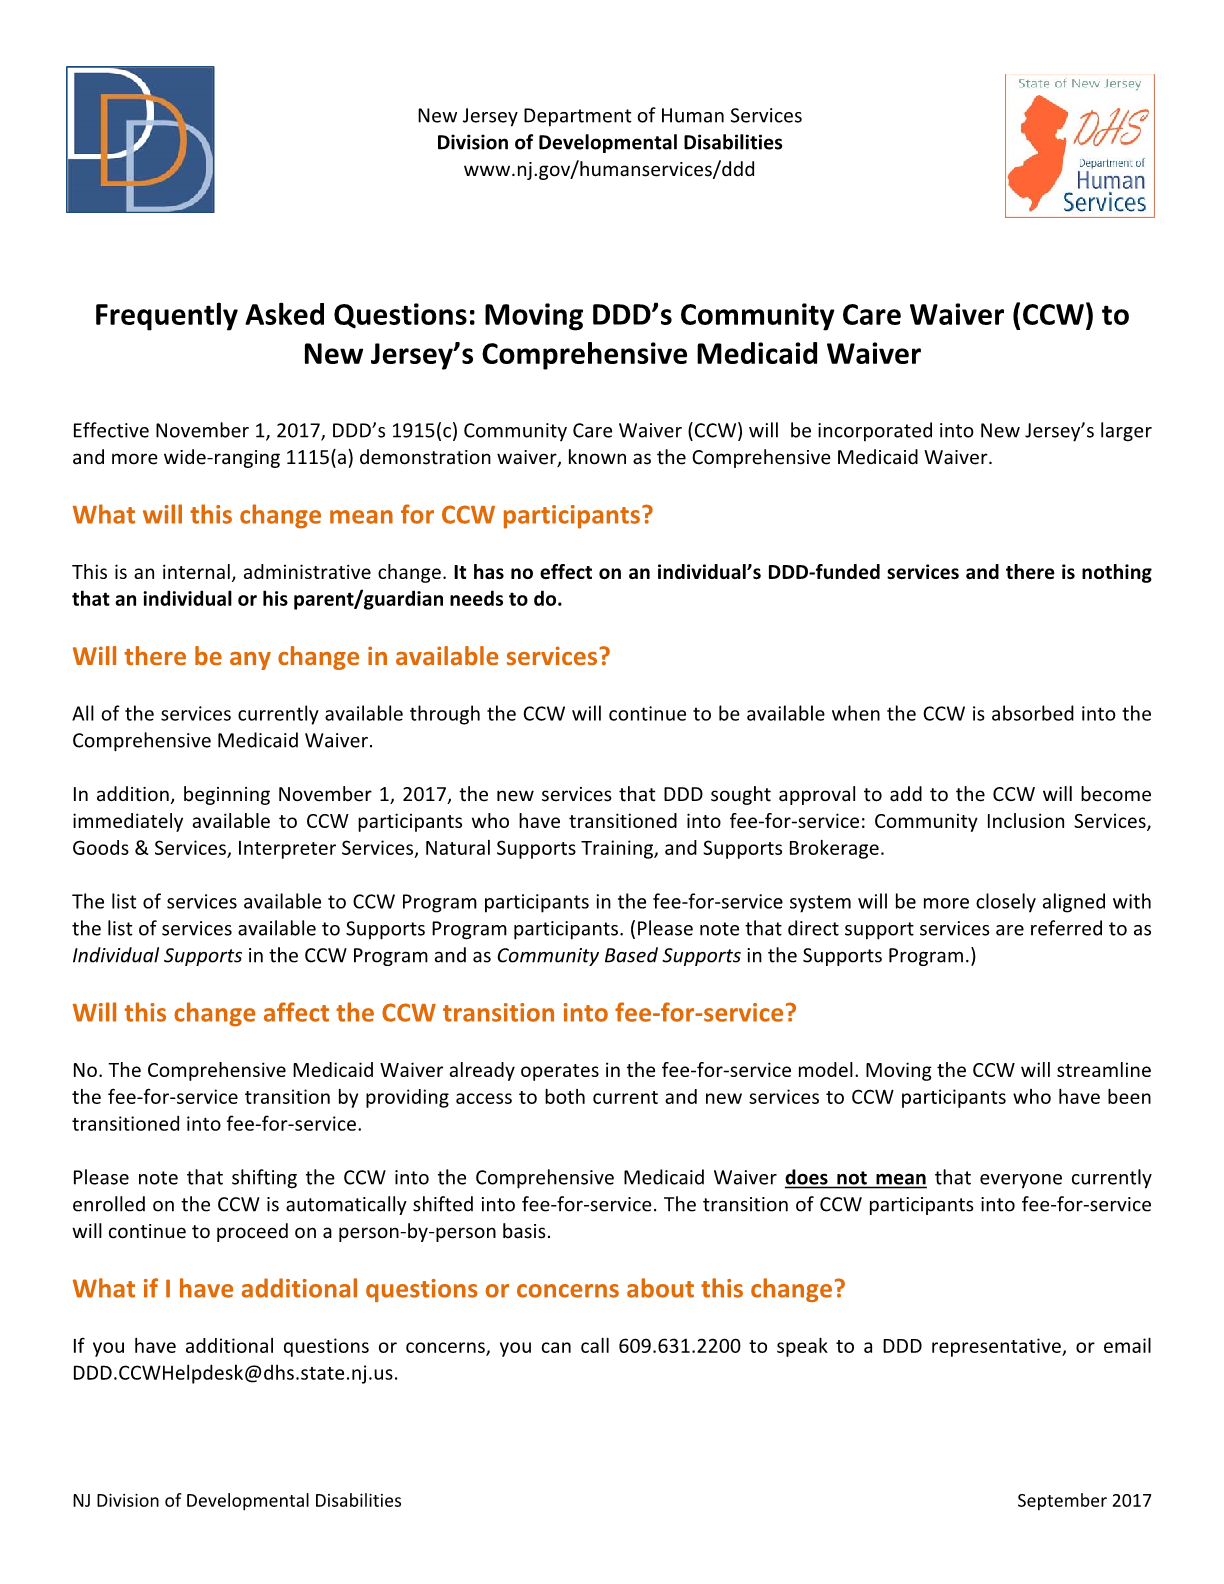 Frequently Asked Questions: Moving DDD's Community Care Waiver (CCW) to New Jersey's Comprehensive Medicaid Waiver